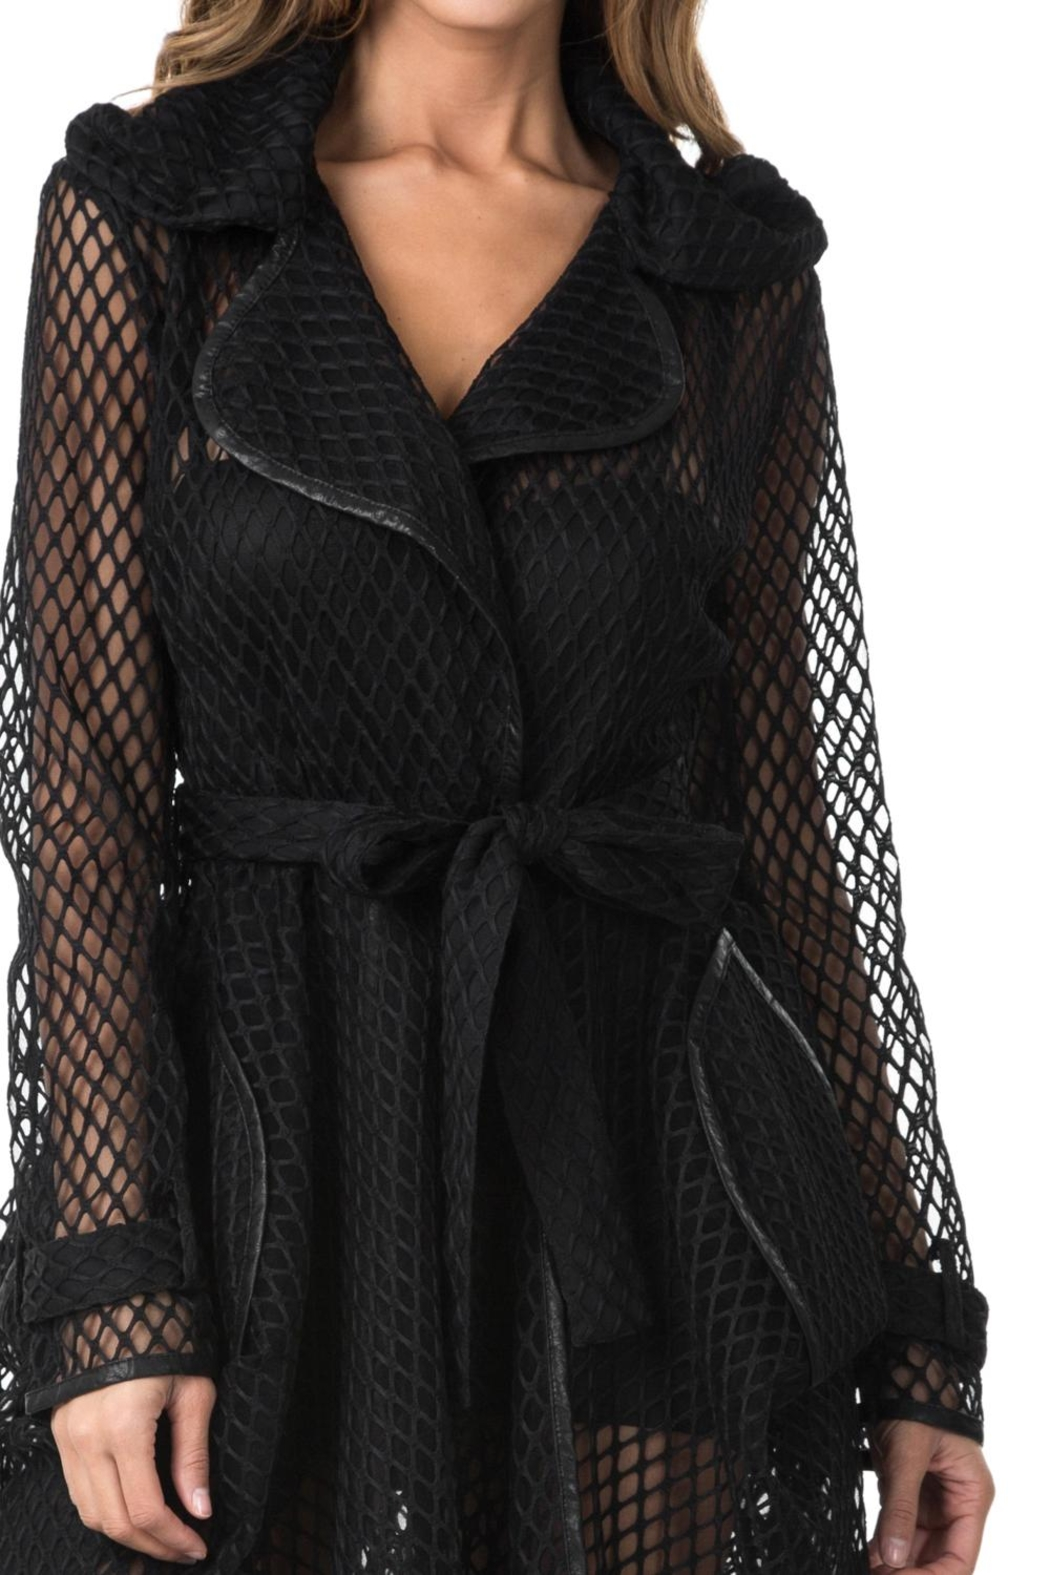 cq by cq Black Mesh Jacket - Back Cropped Image